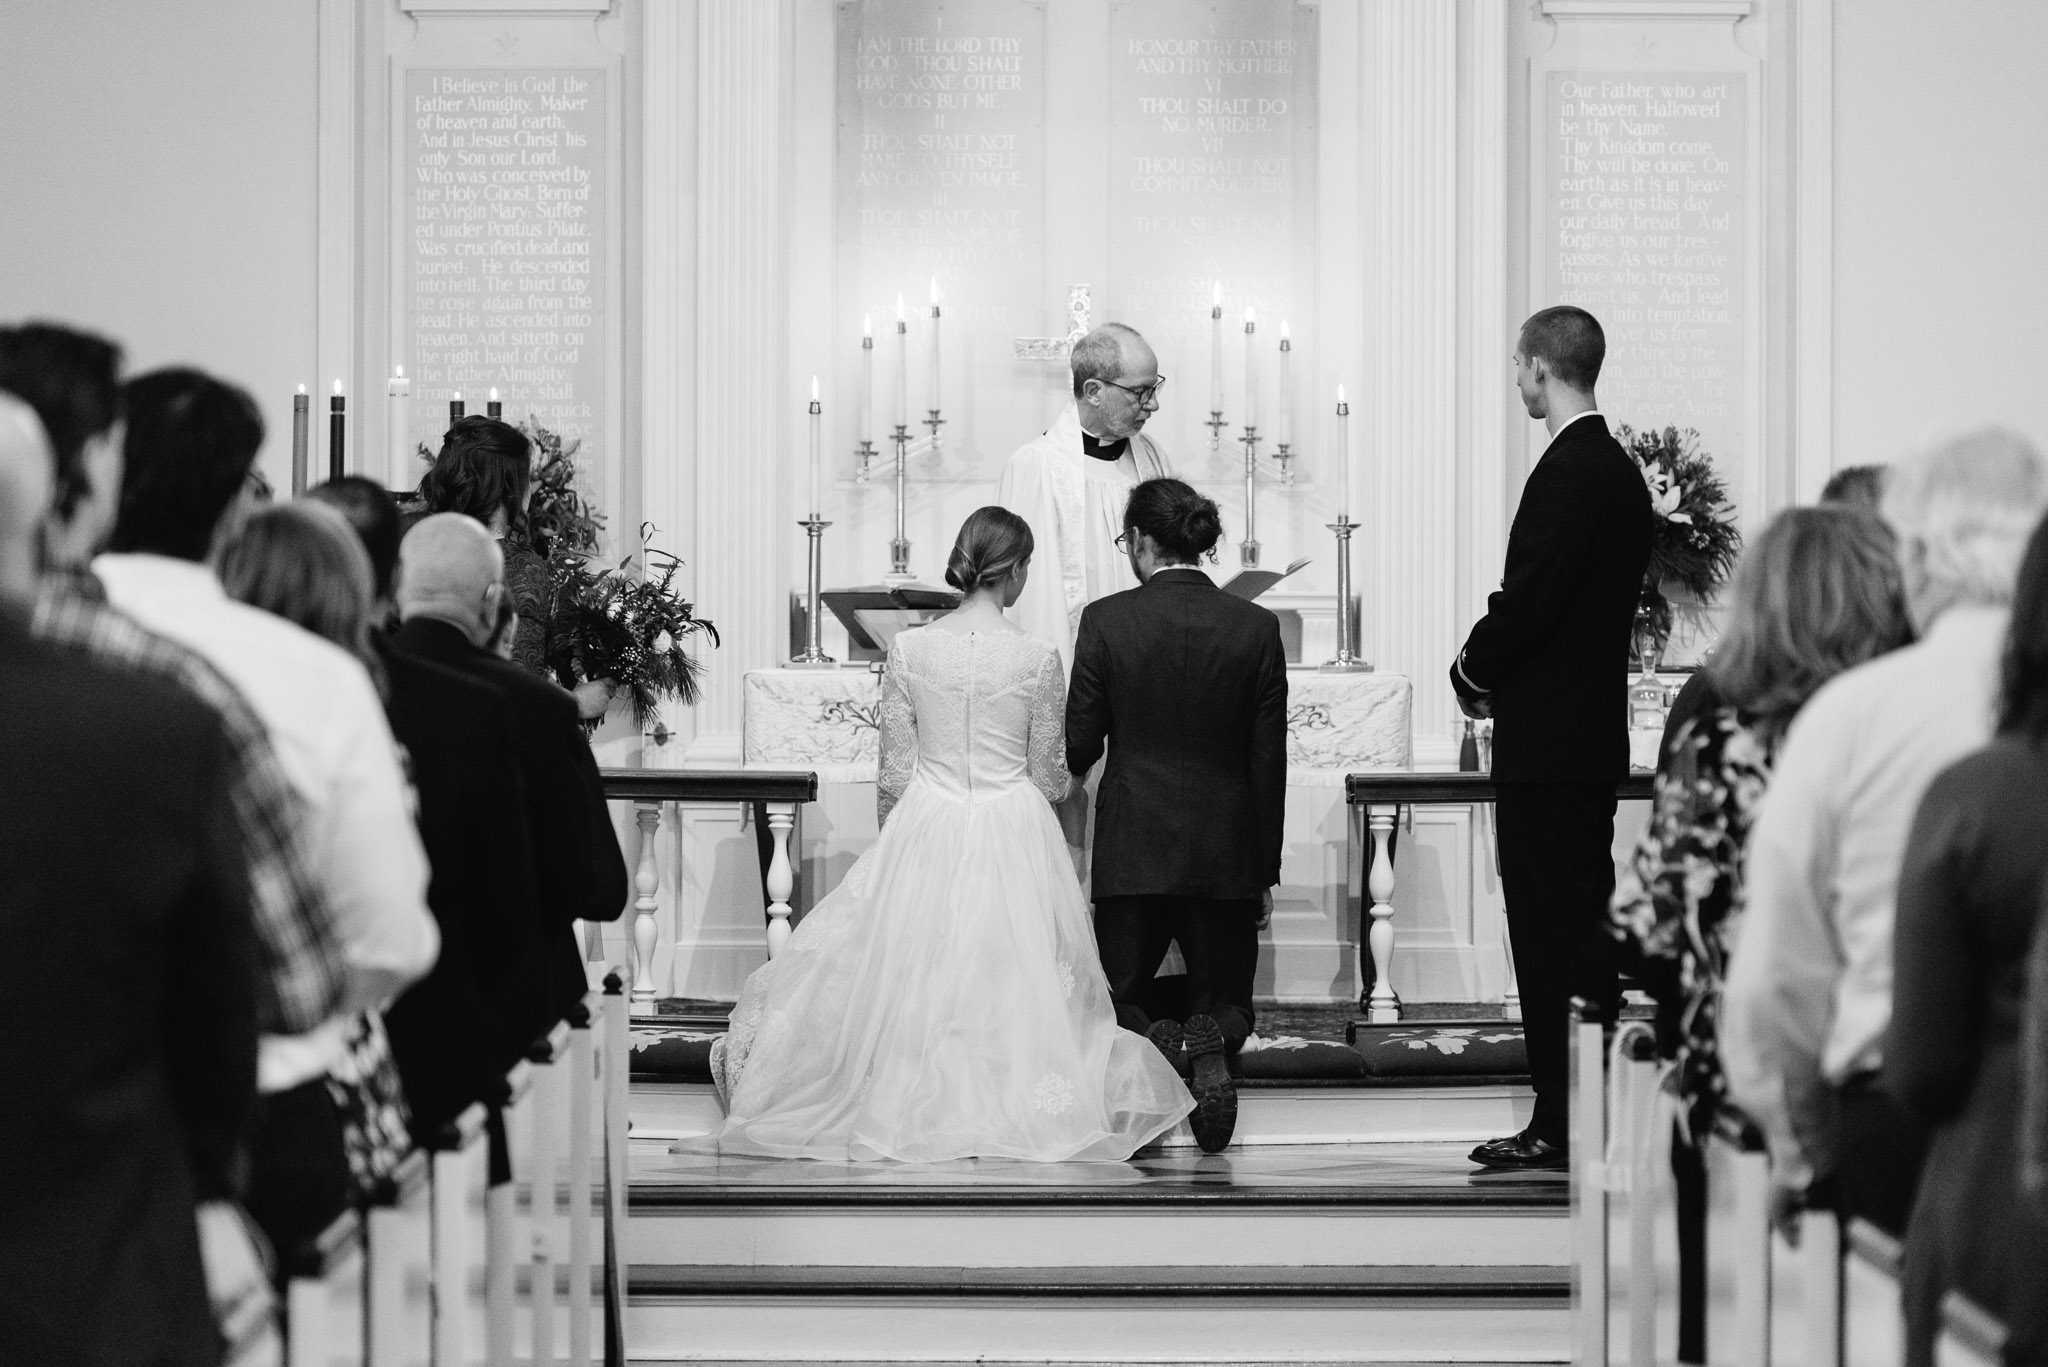 St Michaels Church wedding ceremony, Ligonier Wedding Photographer-0992.jpg